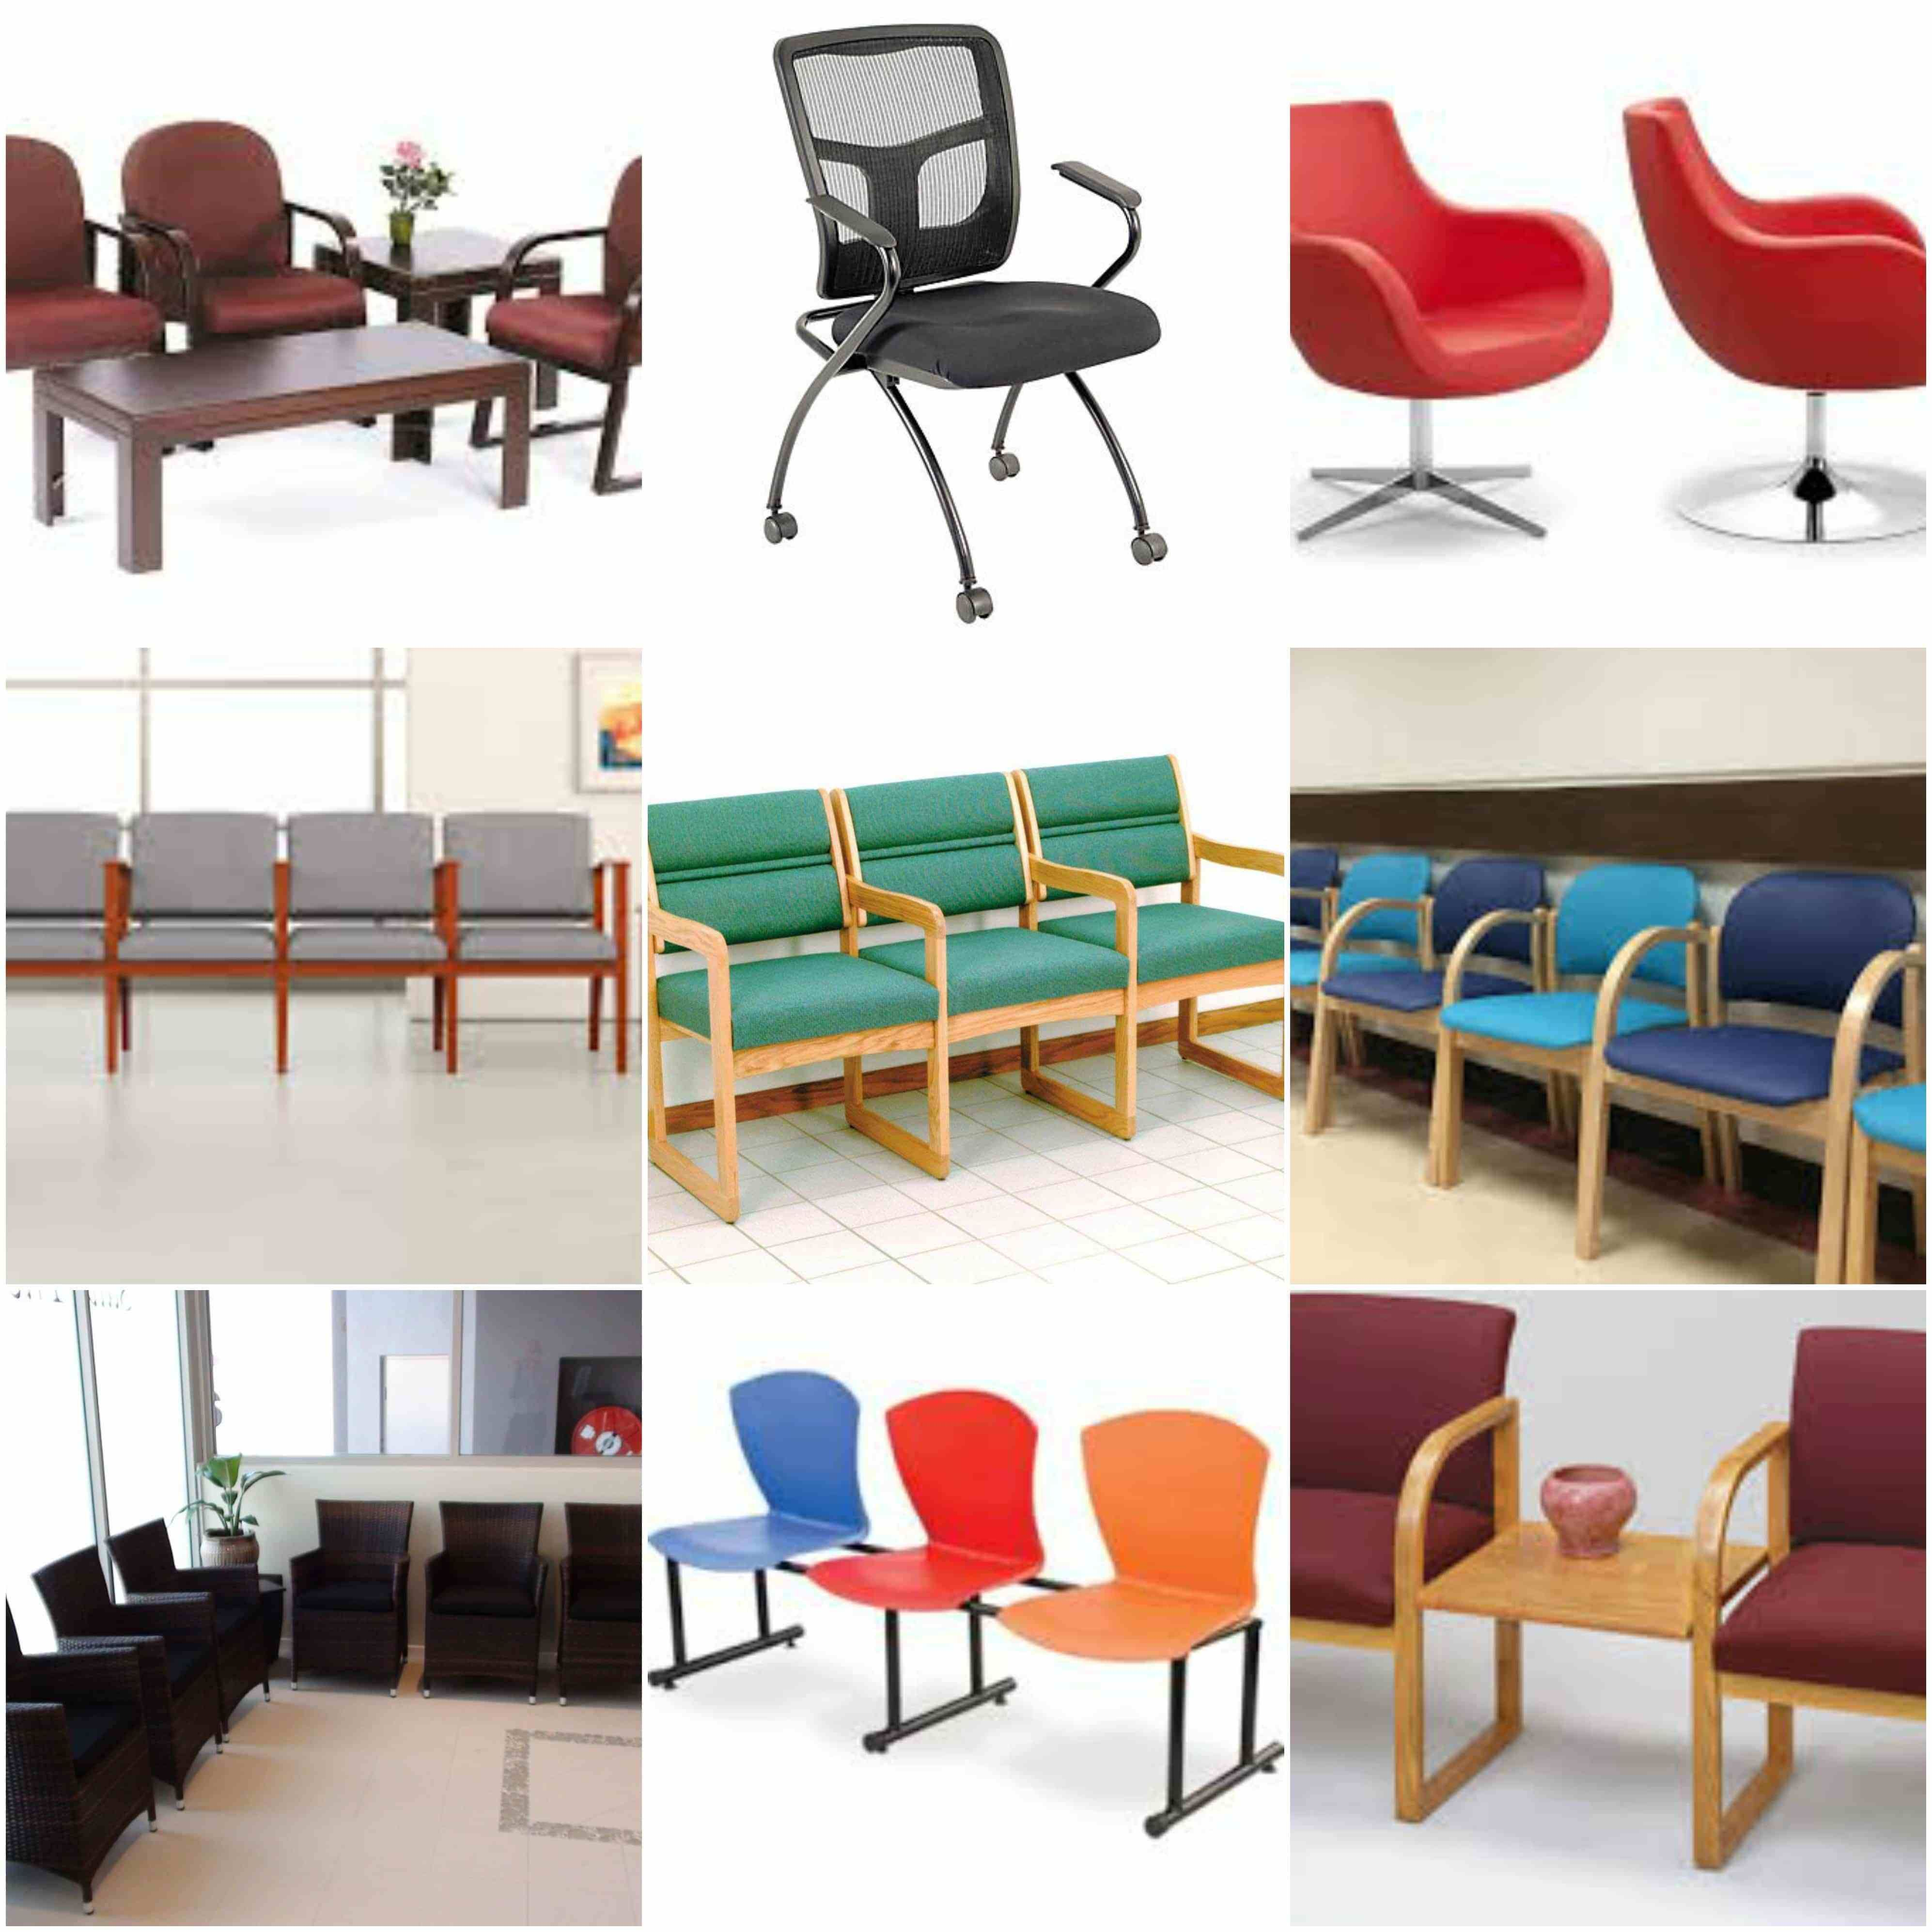 Today we are going to share the Top 10 Best Waiting Room ...